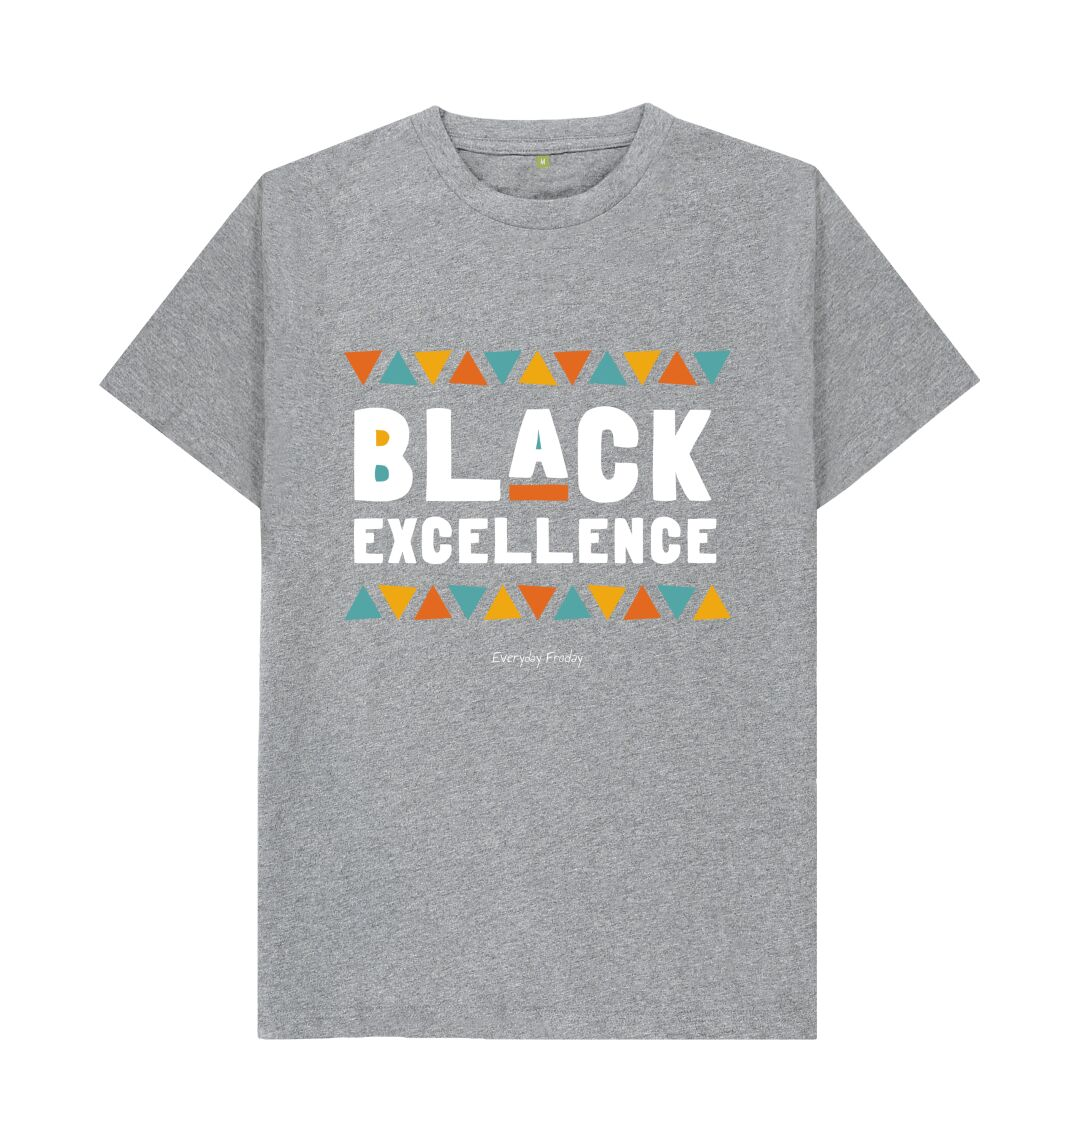 Athletic Grey Unisex Tee | Black Excellence